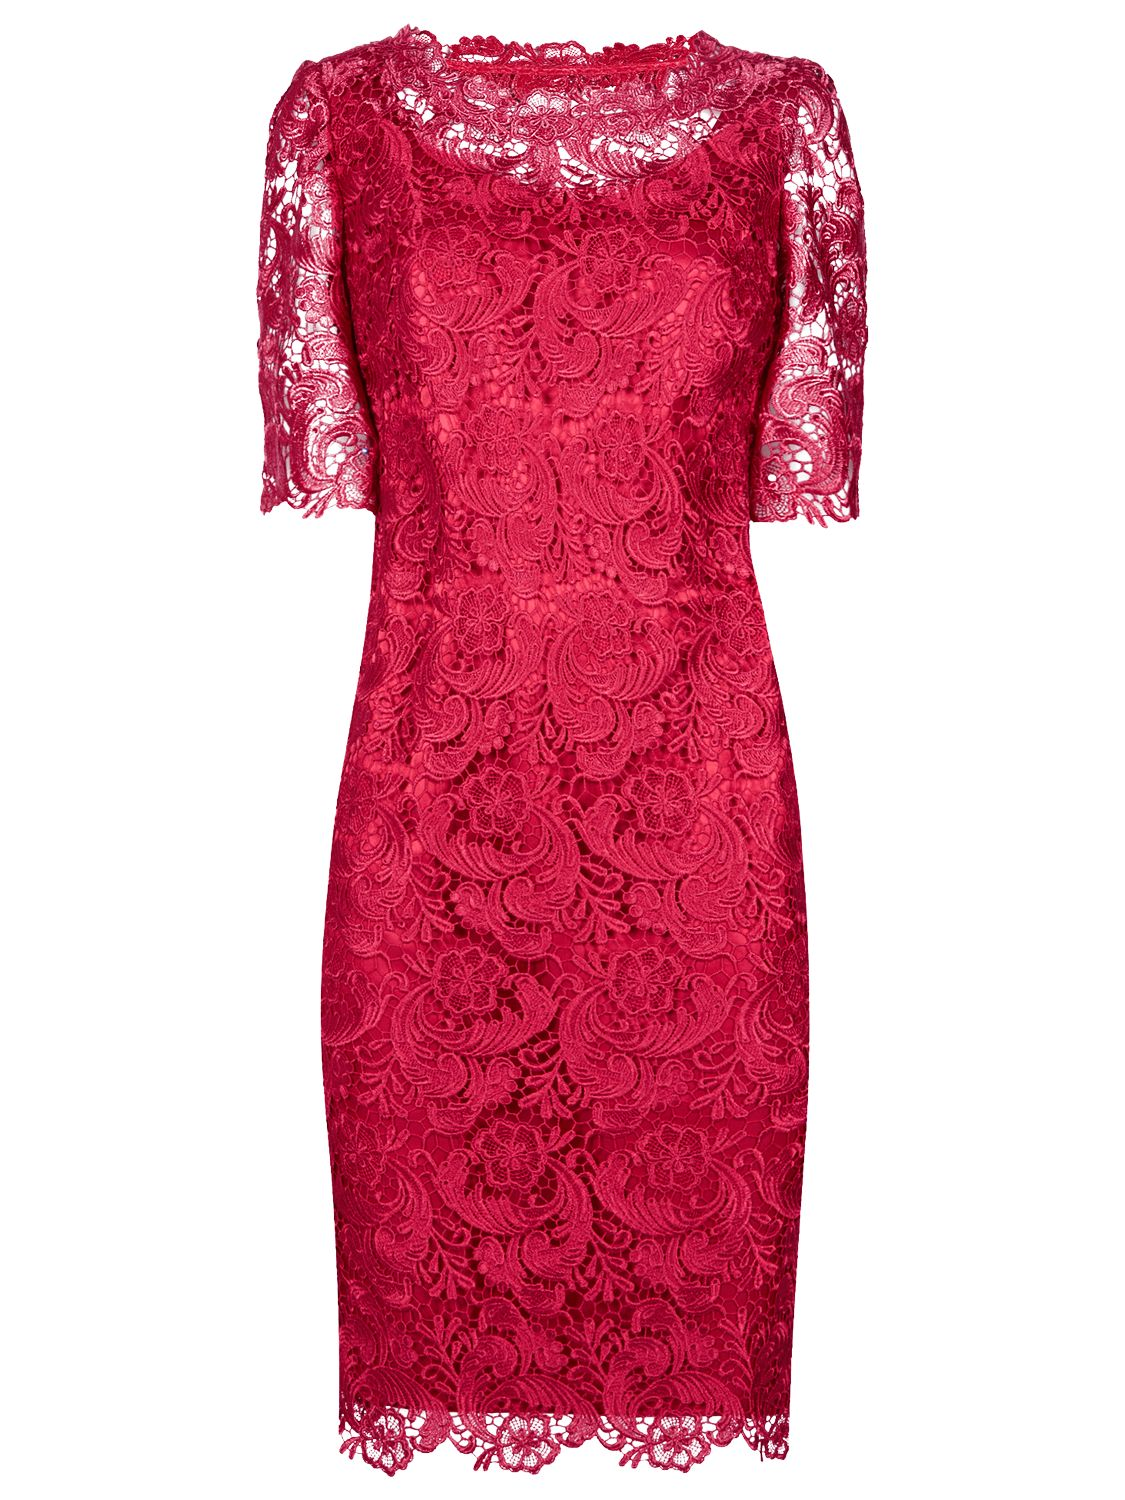 jacques vert luxury lace tunic dress scarlet, jacques, vert, luxury, lace, tunic, dress, scarlet, jacques vert, clearance, womenswear offers, womens dresses offers, special offers, women, plus size, womens dresses, 1585236